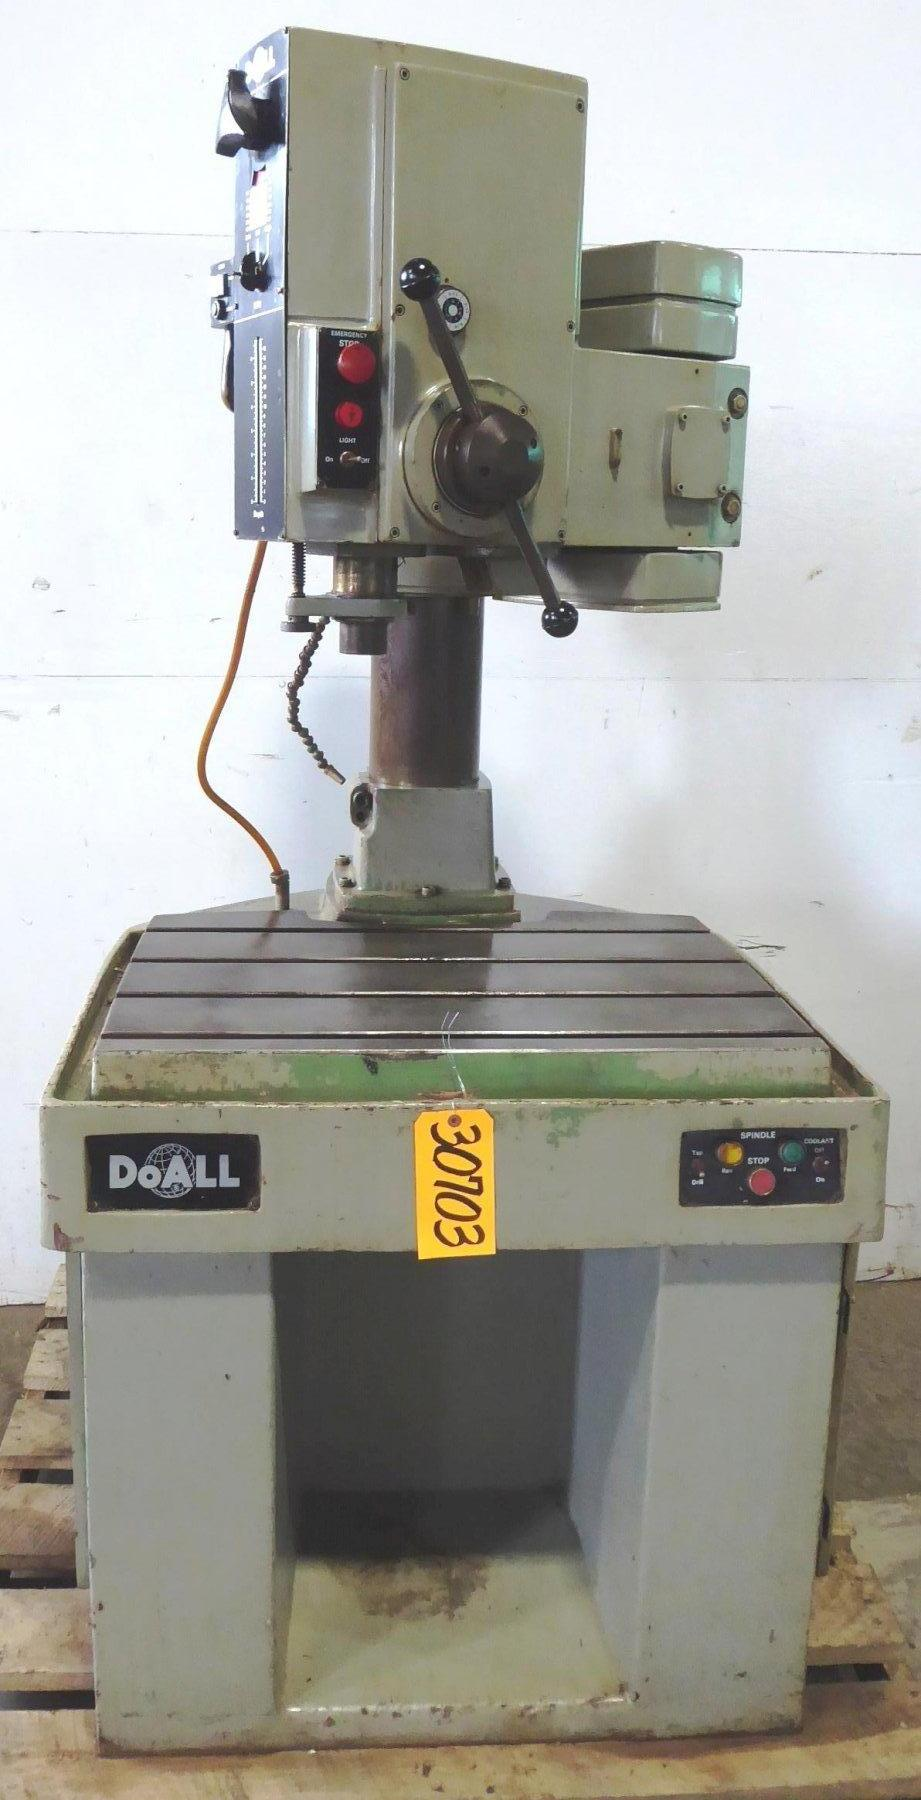 DoAll Radial Drill Model DTR-28, Articulating Arm, 90-3360 RPM, 4 MT, Power Elevation & Clamping, Nice